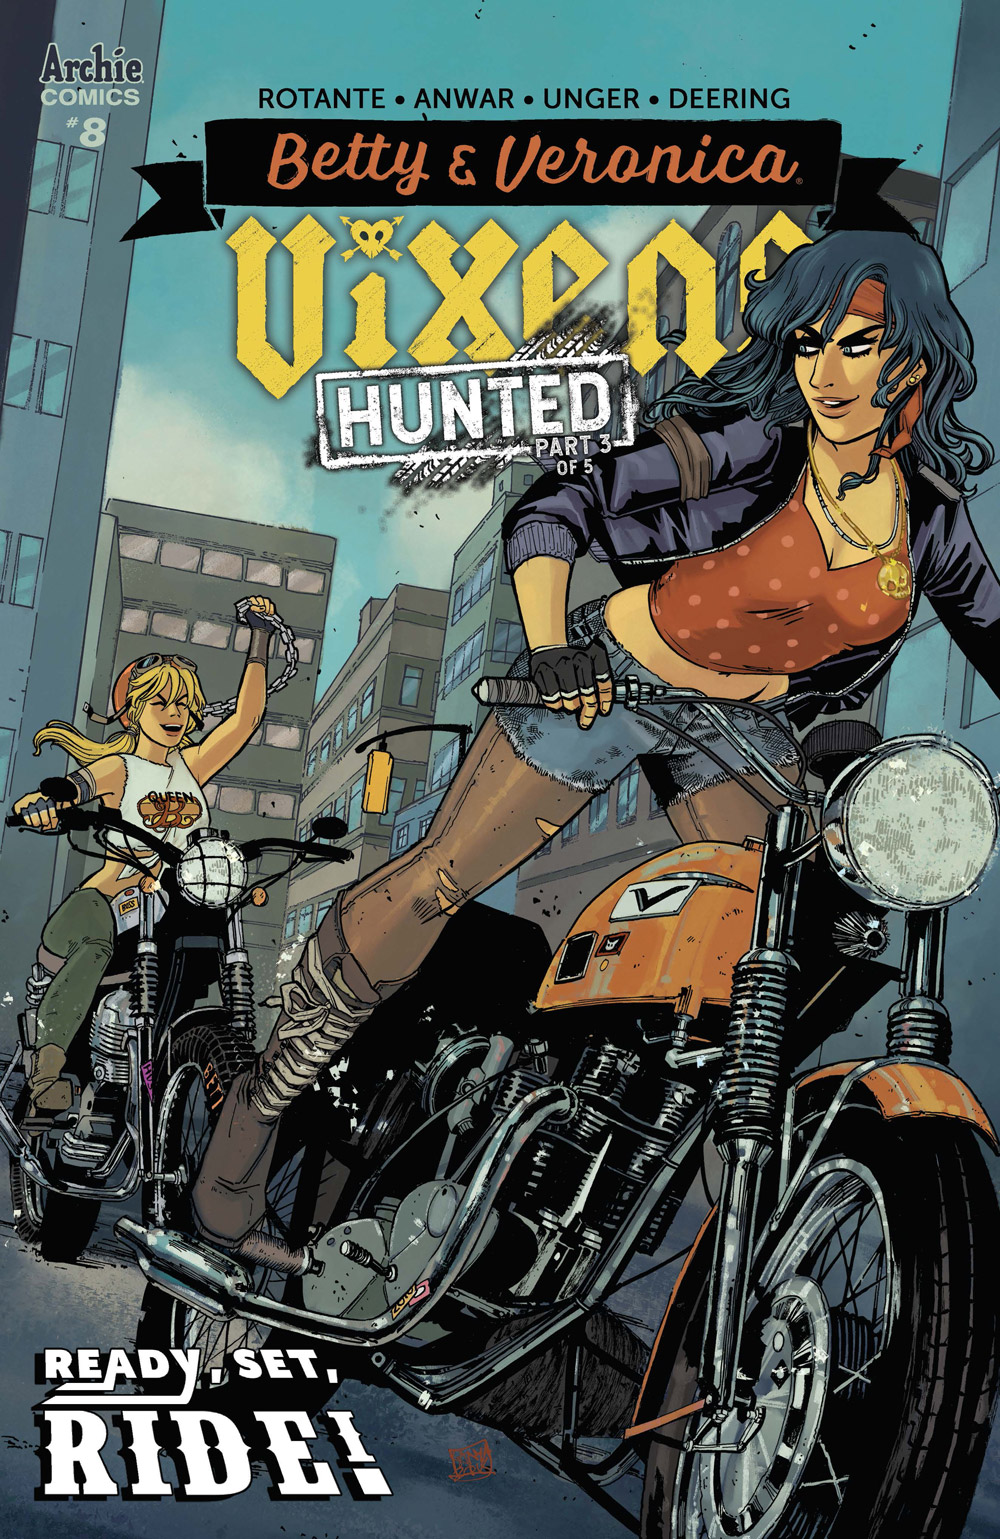 Betty and Veronica: Vixens #8: CVR A Anwar